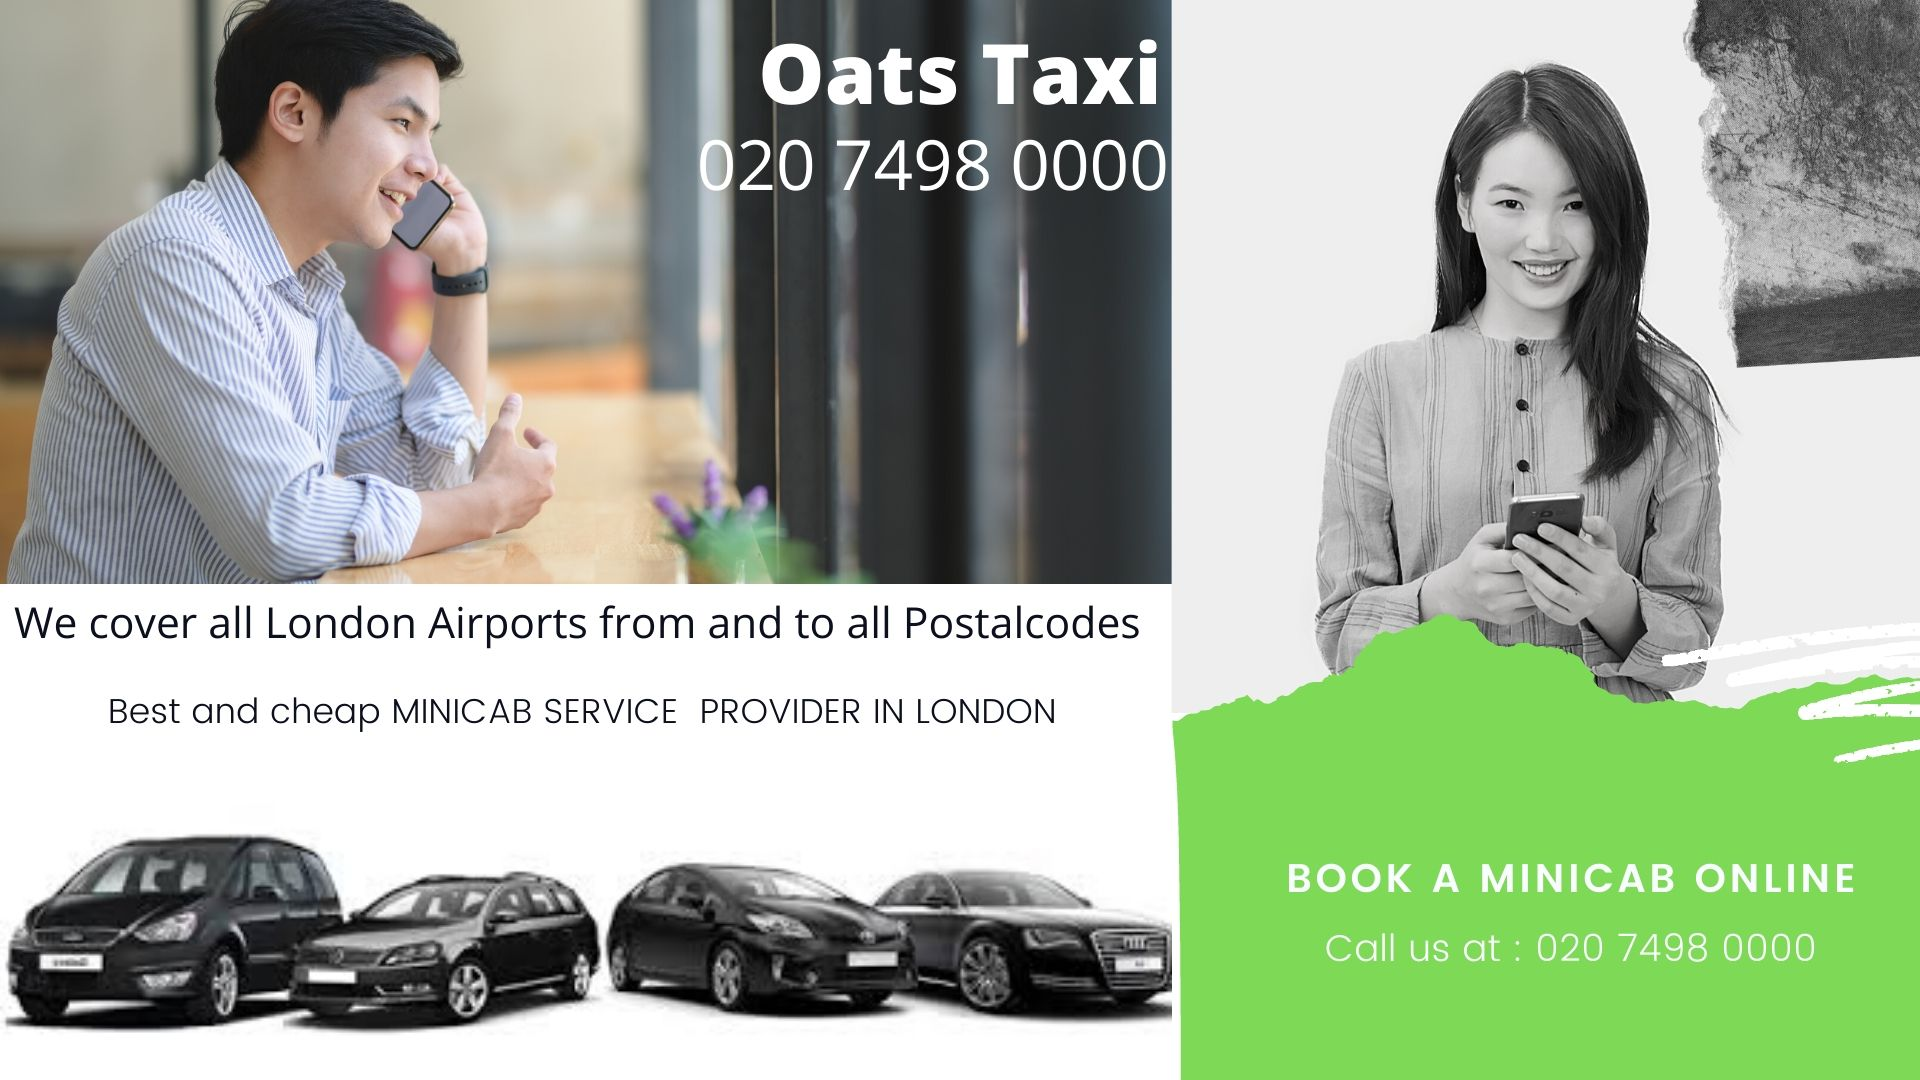 Minicab Near ROWENA CRESCENT, Battersea SW11, Minicab From Battersea SW11 To Gatwick Airport